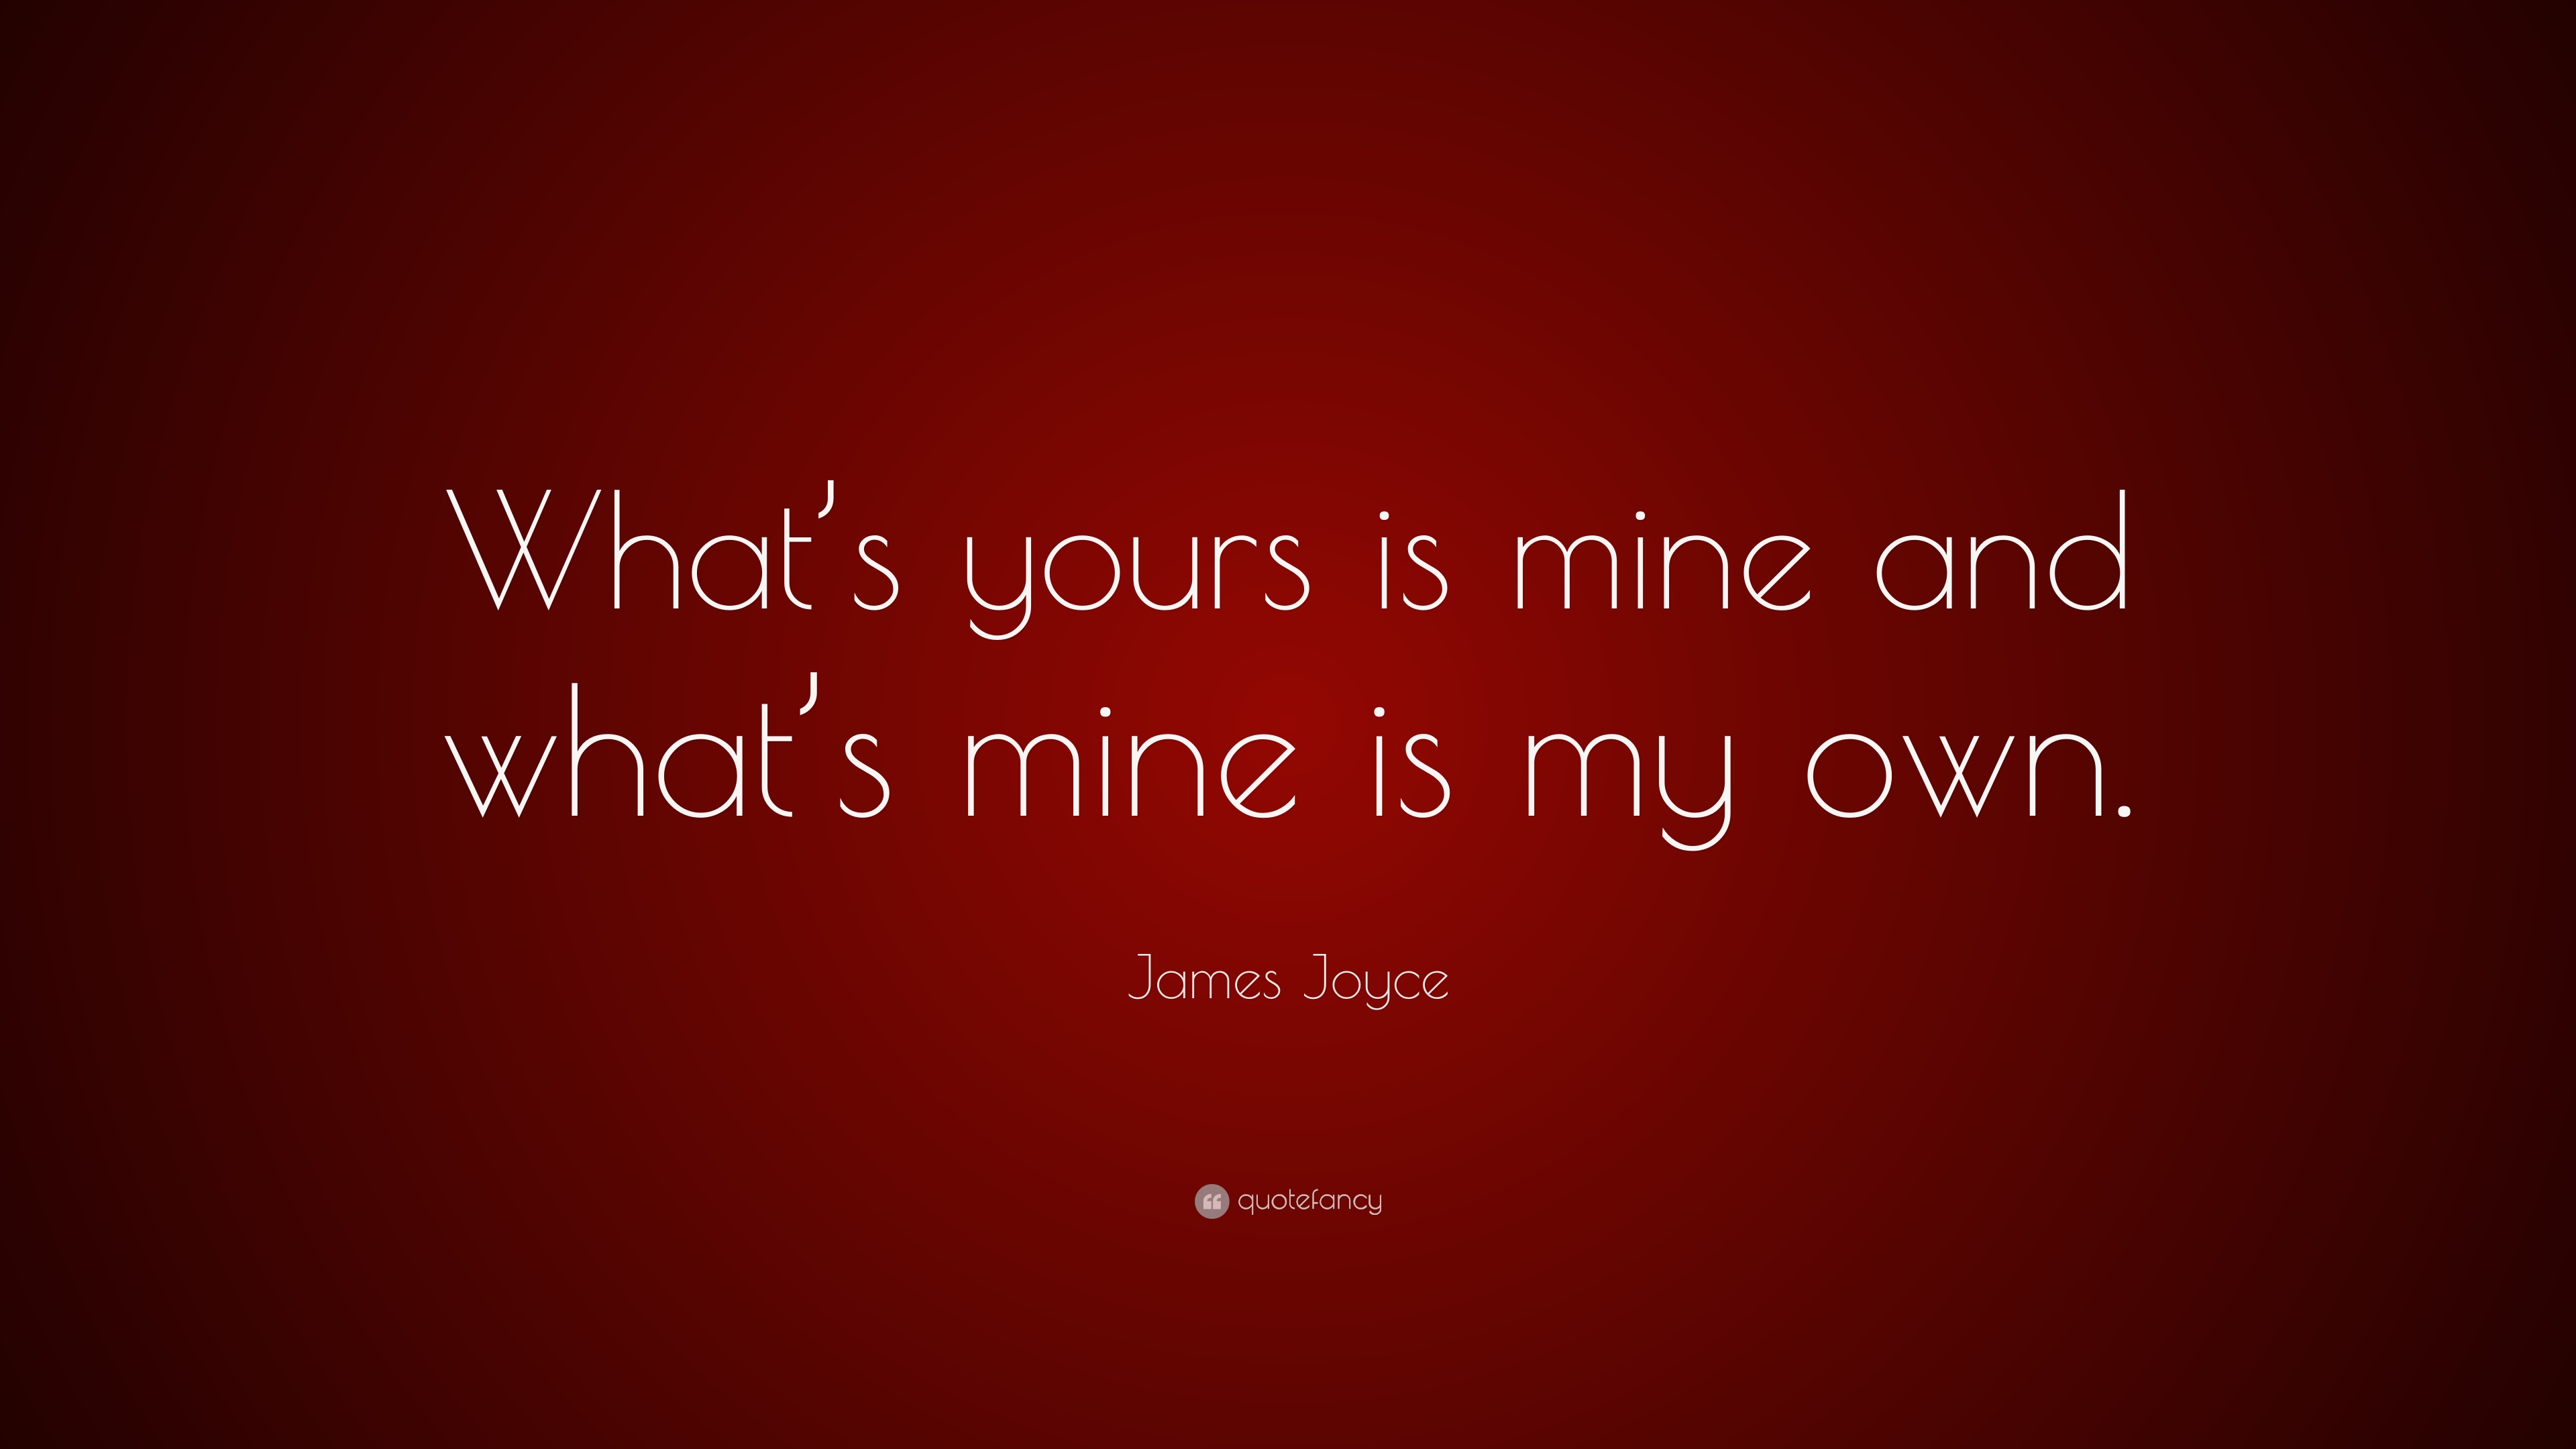 James Joyce Quotes (100 Wallpapers)